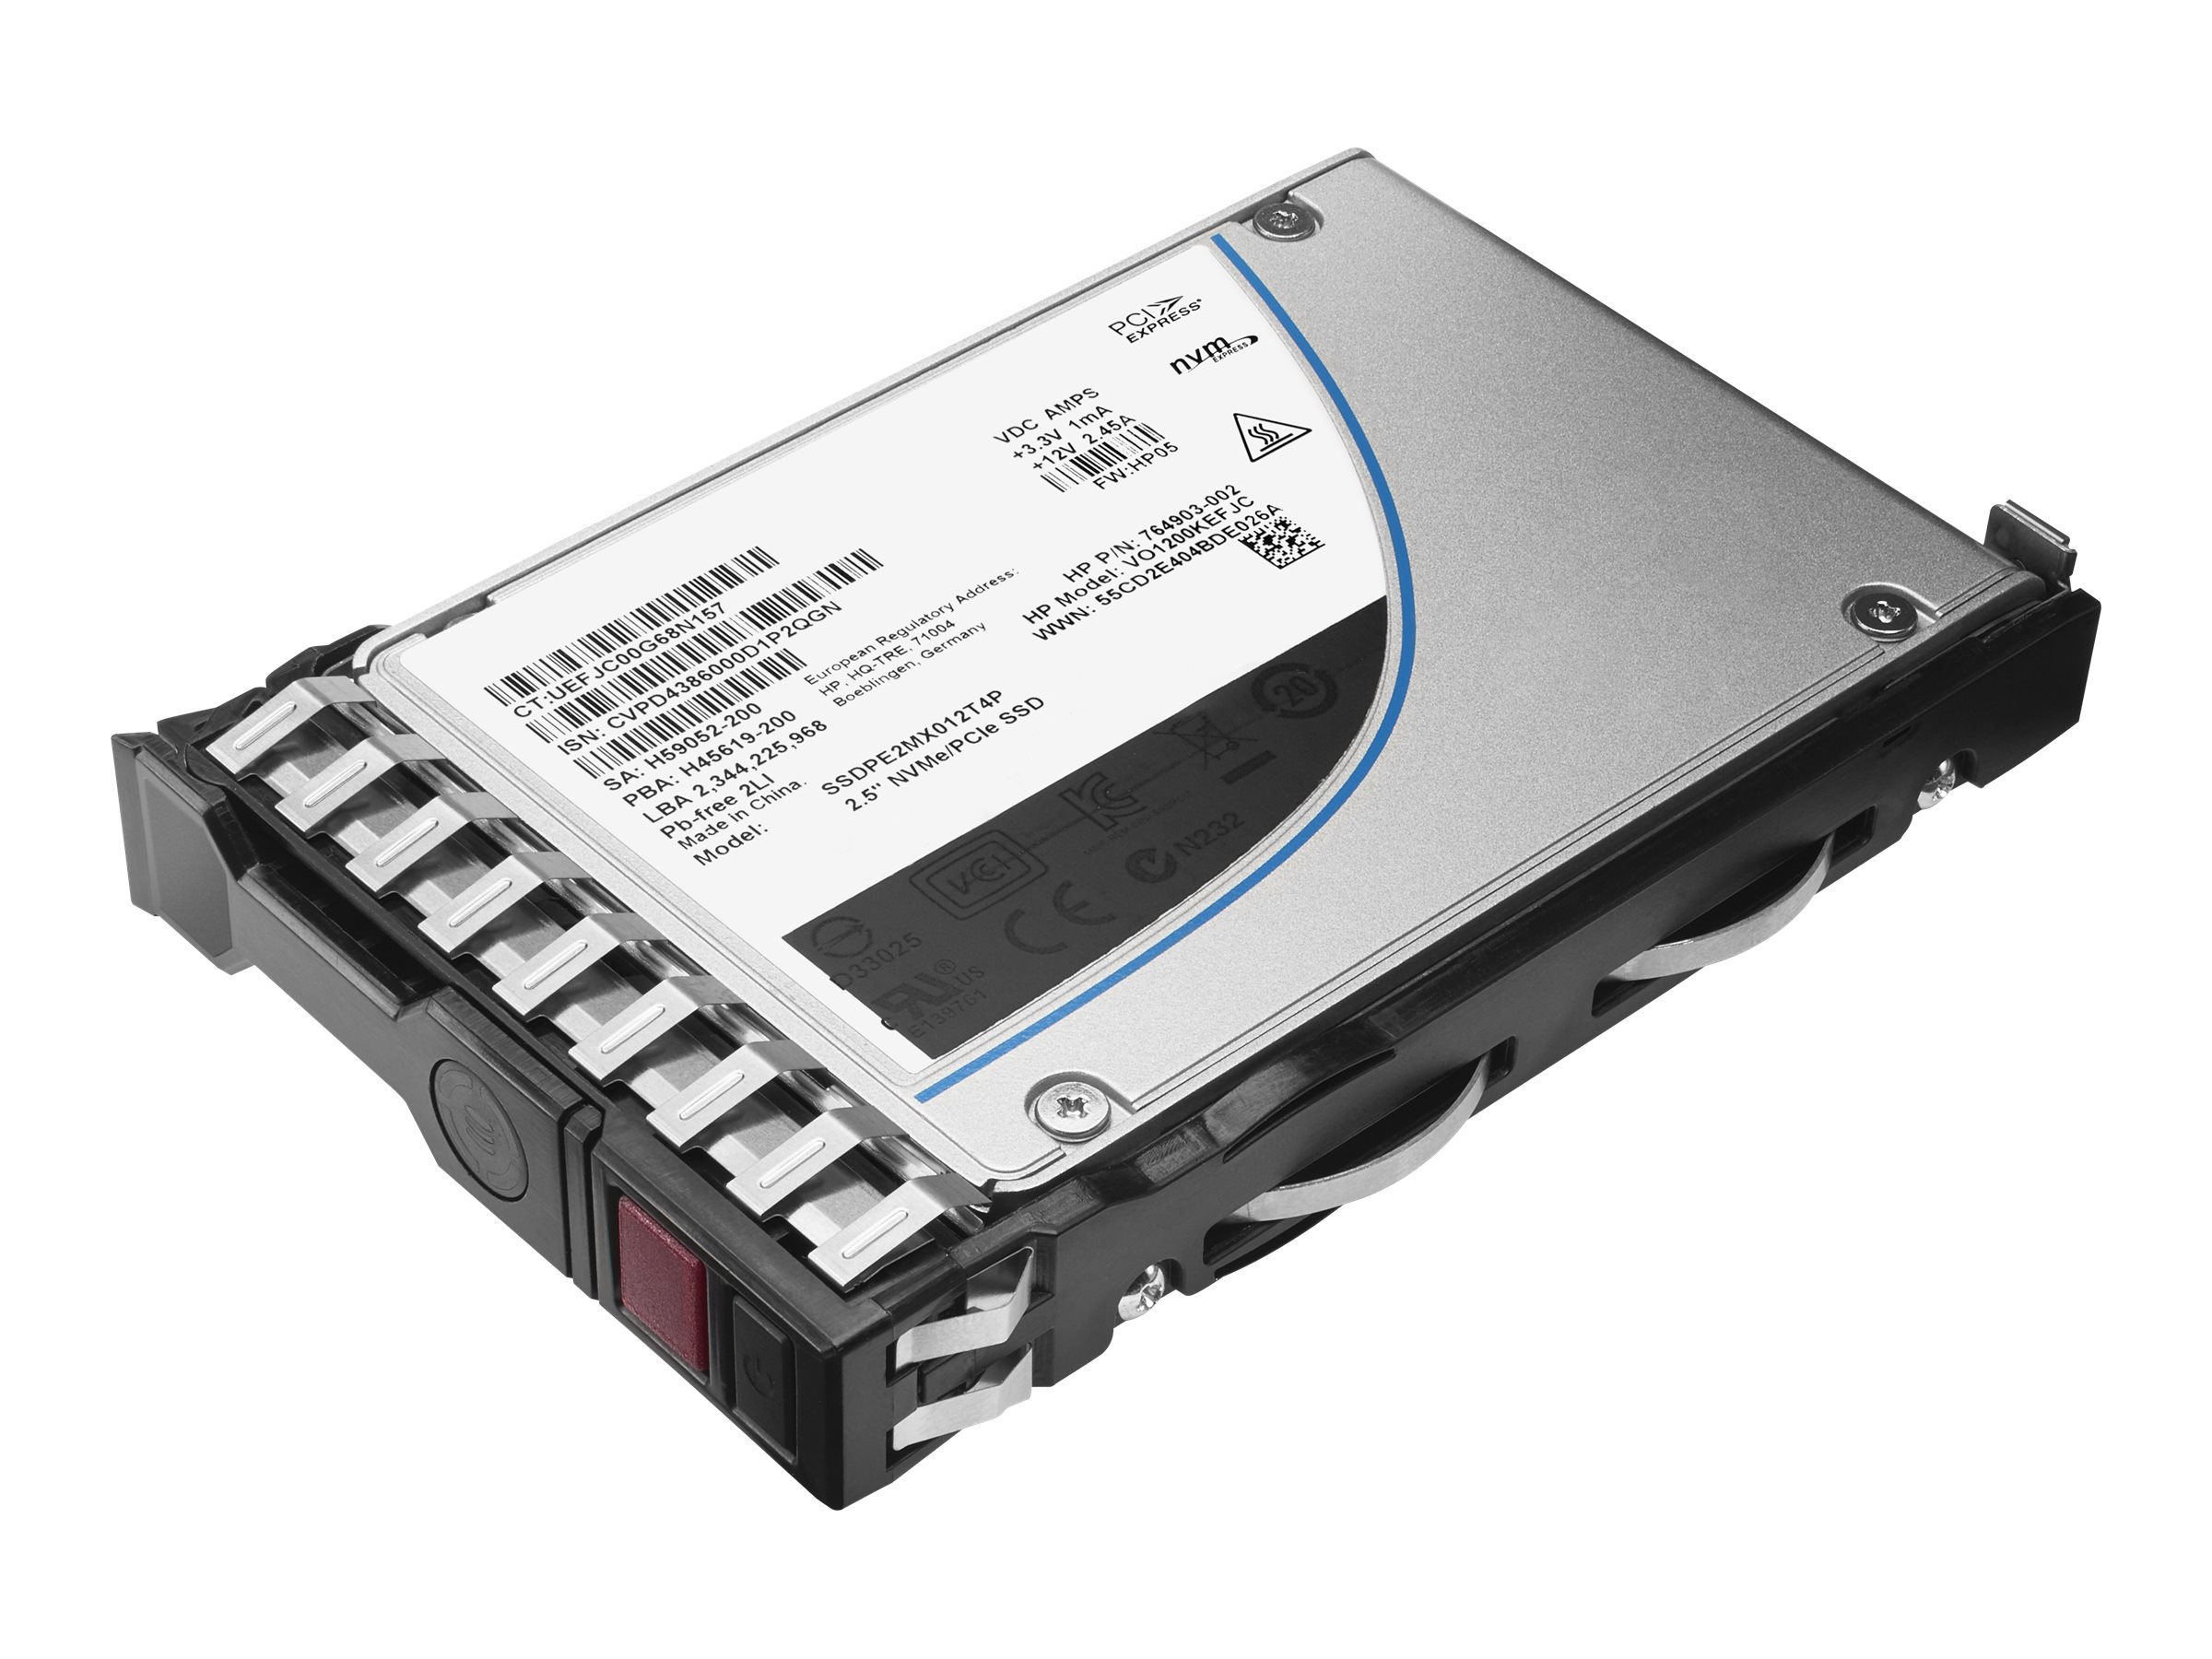 HPE 960GB SATA 6Gb s Read Intensive-3 LFF 3.5 SC Converter Solid State Drive